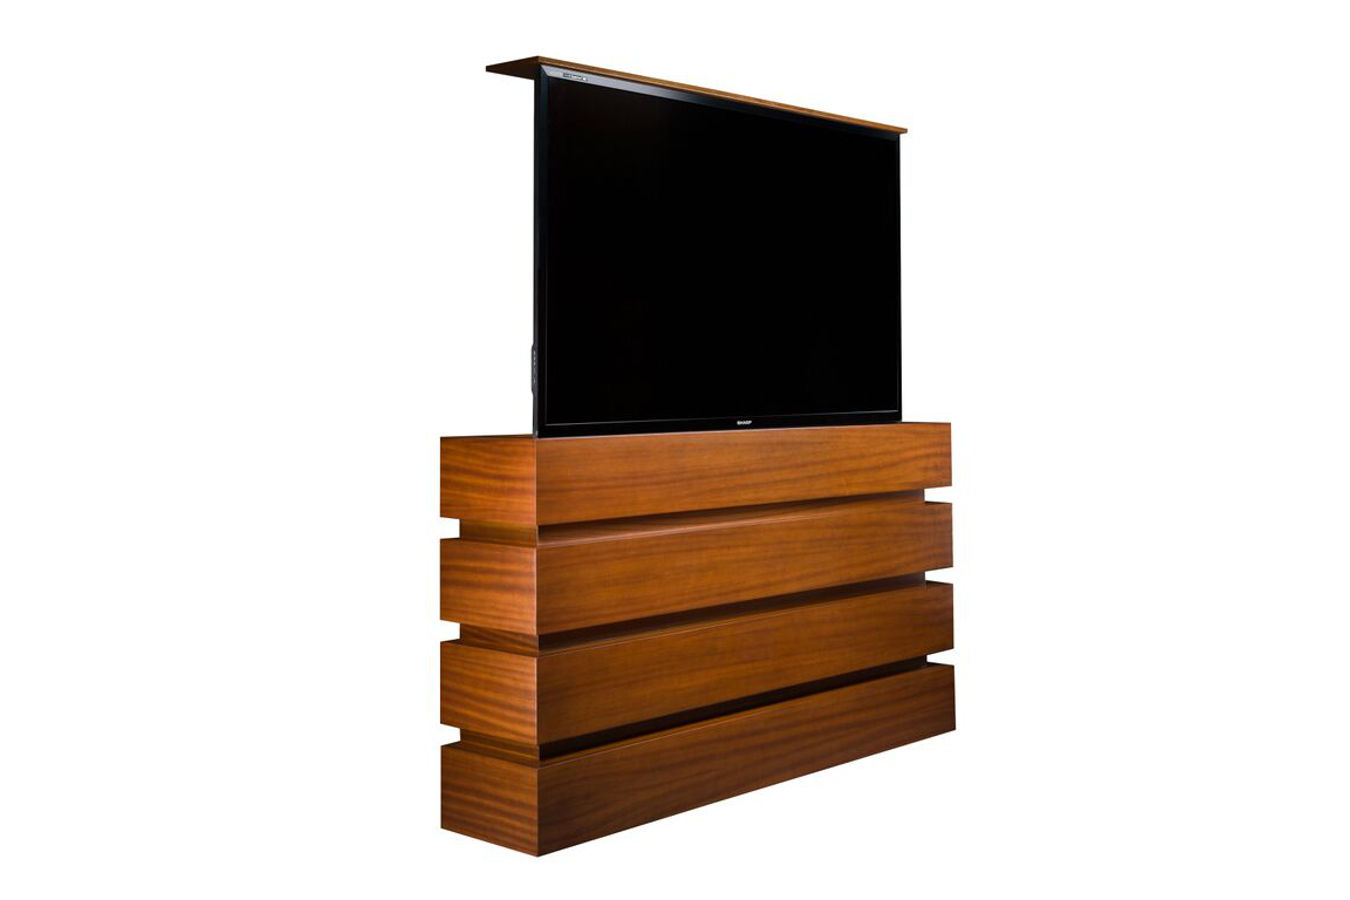 ikea pop up tv lift cabinet interessante ideen f r die gestaltung eines raumes in. Black Bedroom Furniture Sets. Home Design Ideas